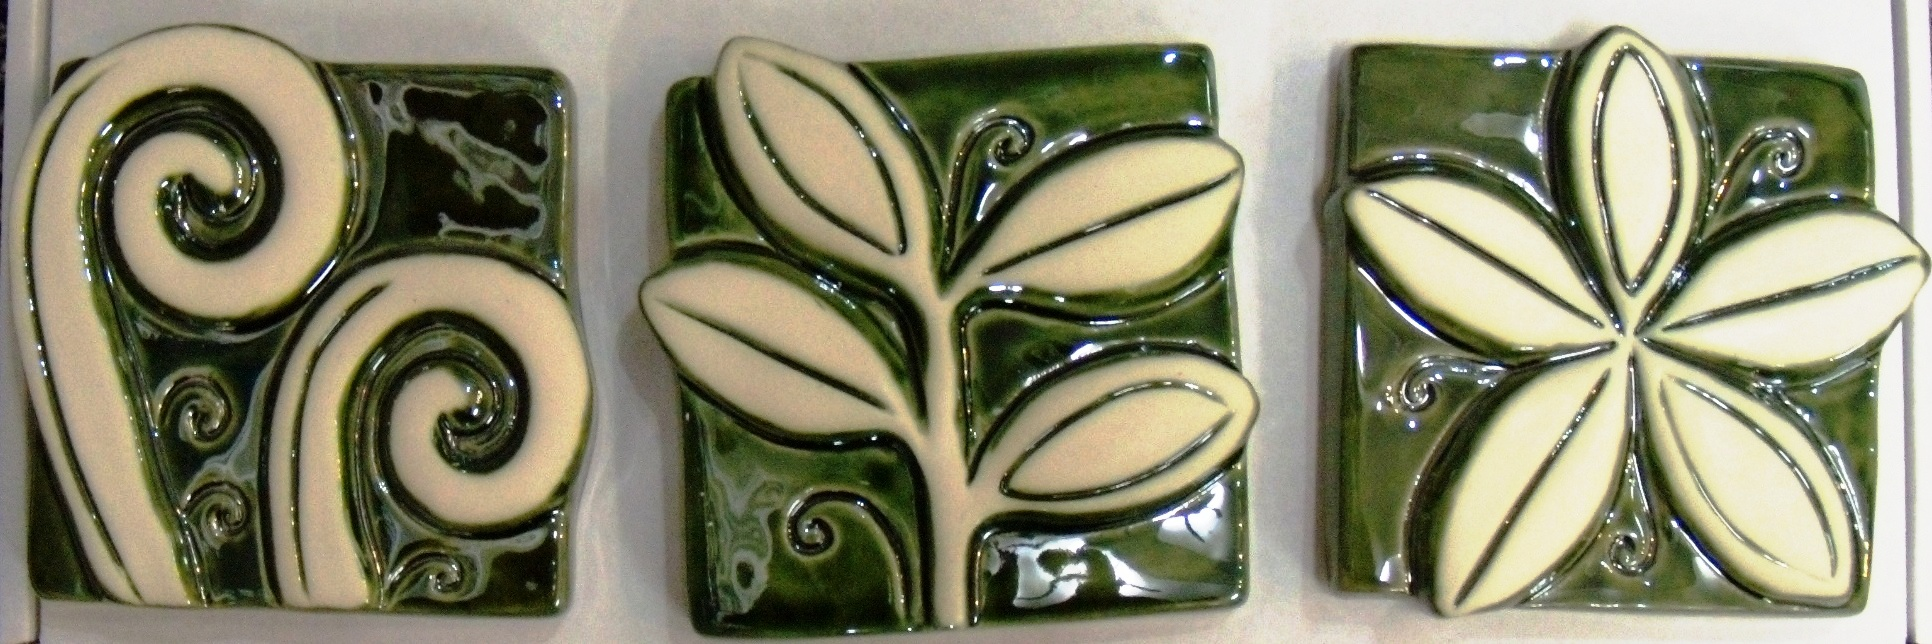 Vibrant N.Z. small $63 Set of 3 depicting Koru, frangipani and Puriri leaves. Each tile measures approx 100mm square. Comes boxed